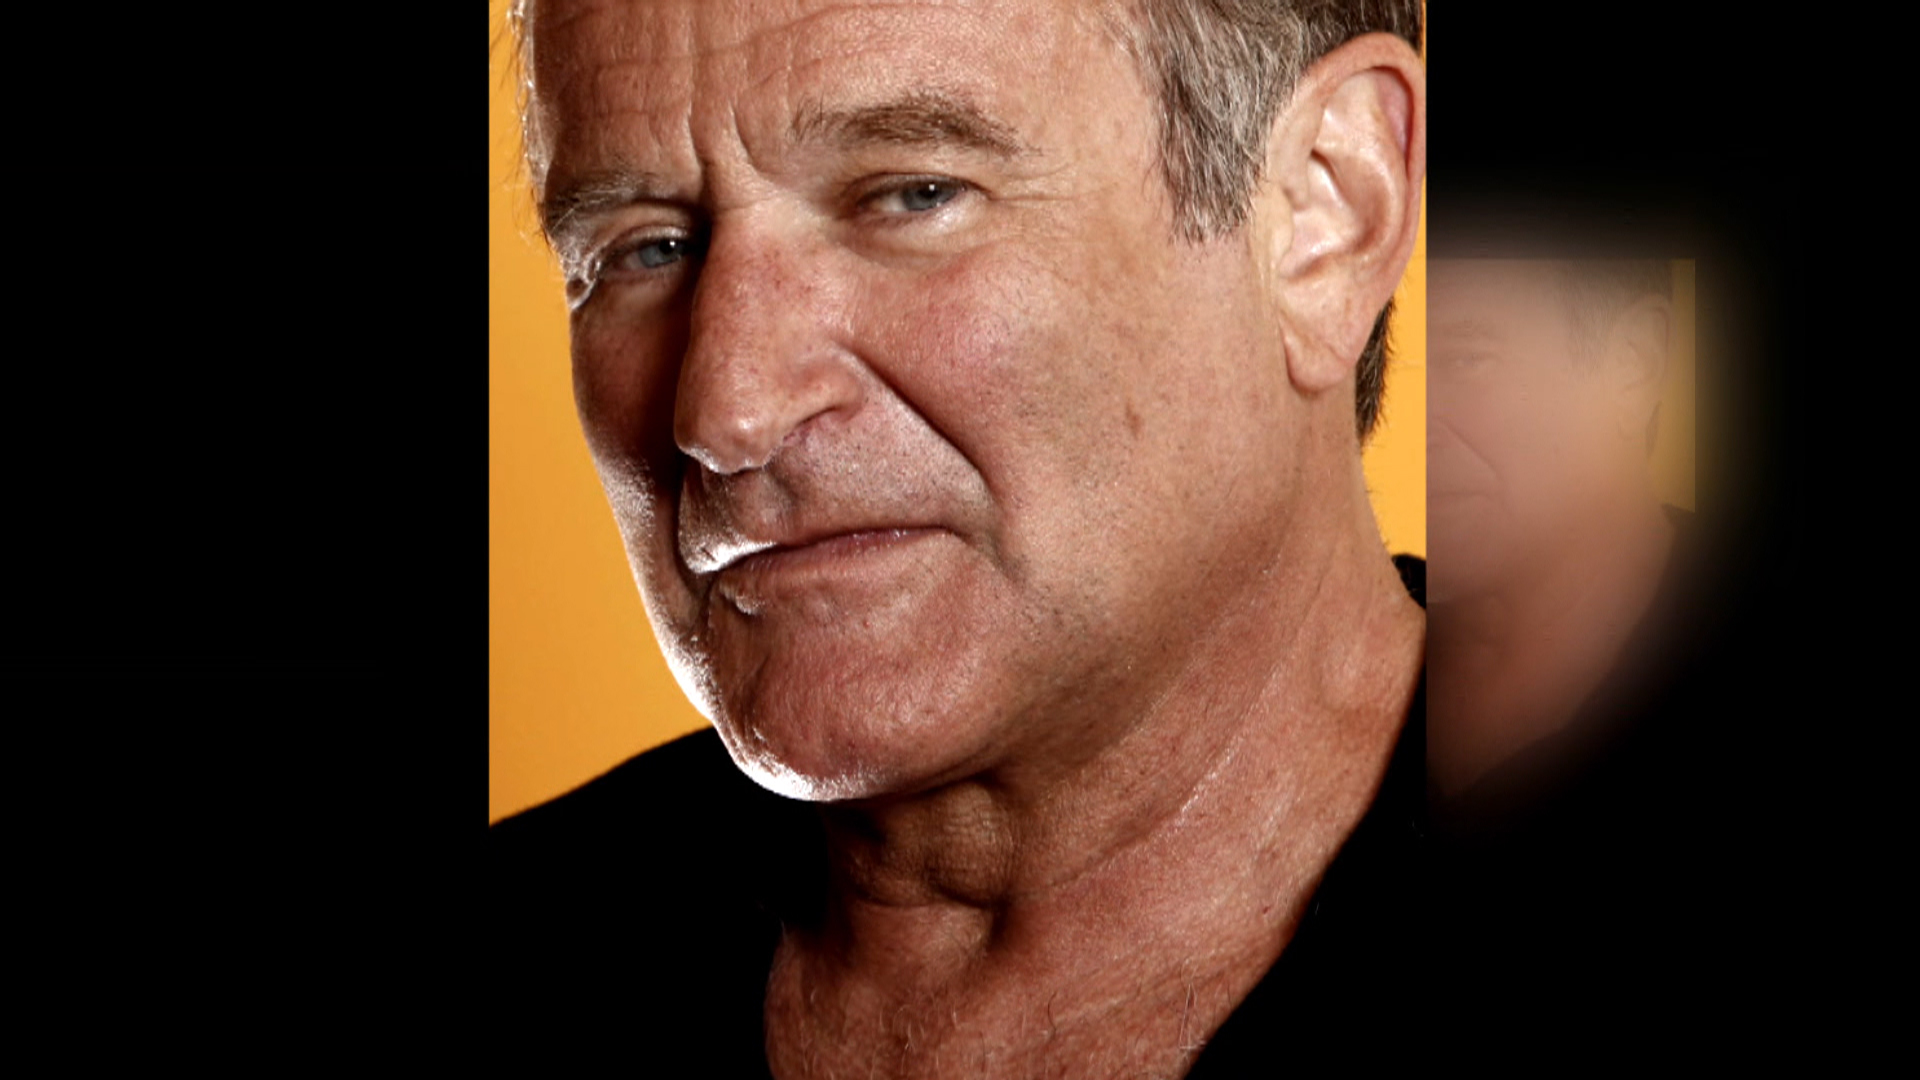 No Alcohol Or Drugs Involved in Death of Robin Williams